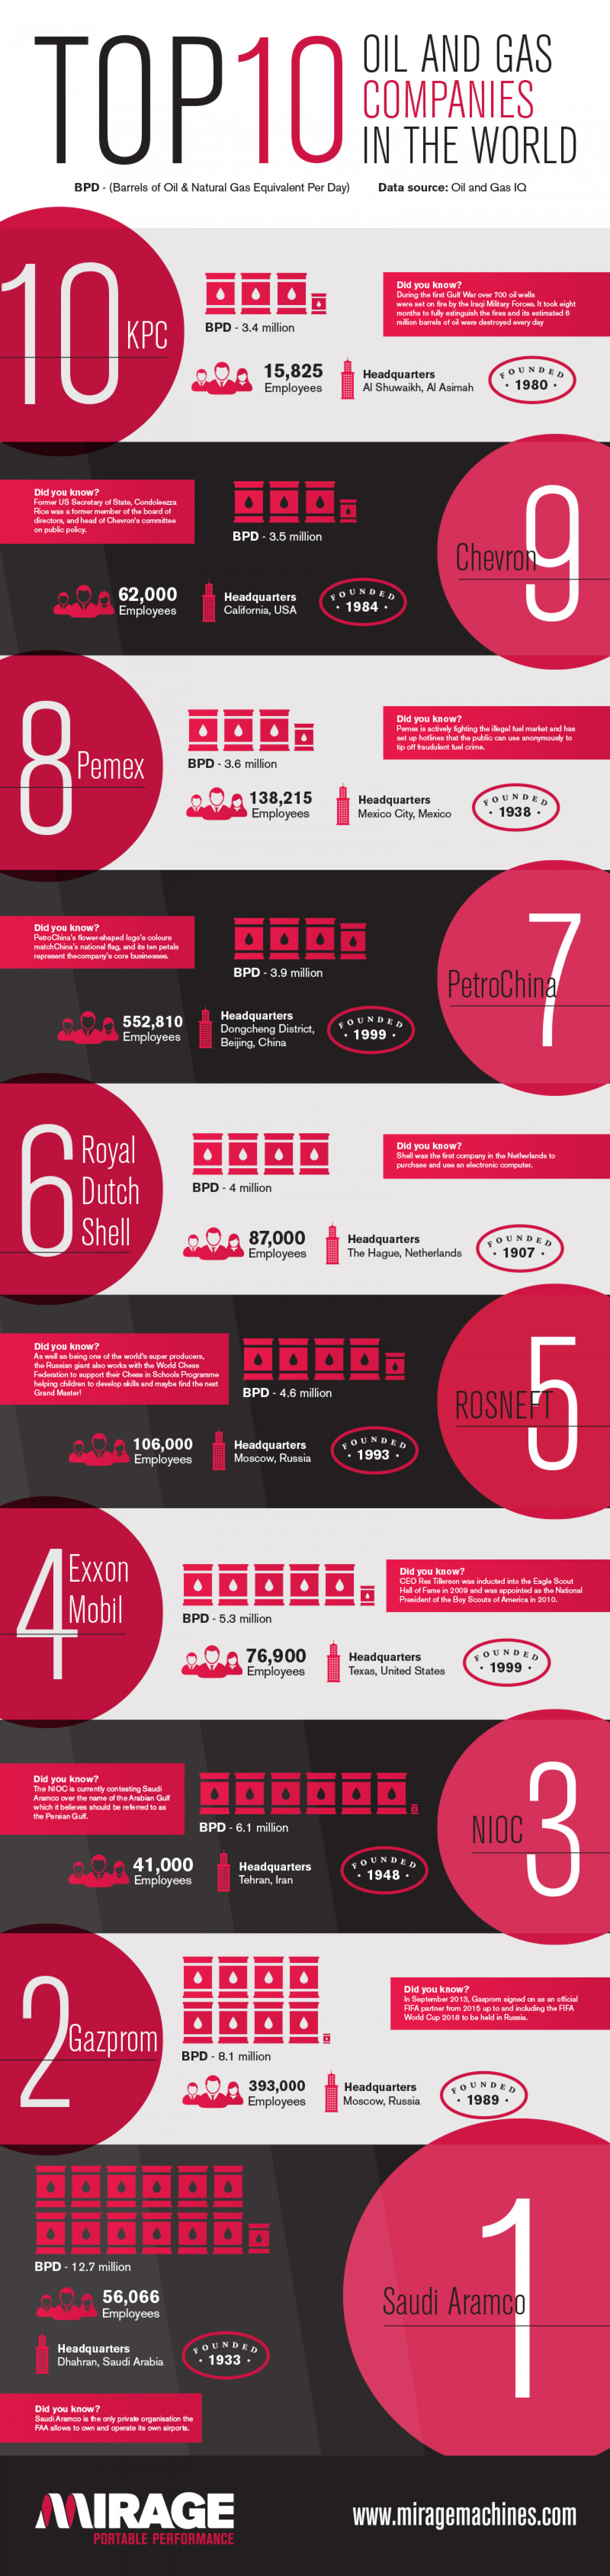 Top 10 Oil and Gas Companies in the World  Infographic